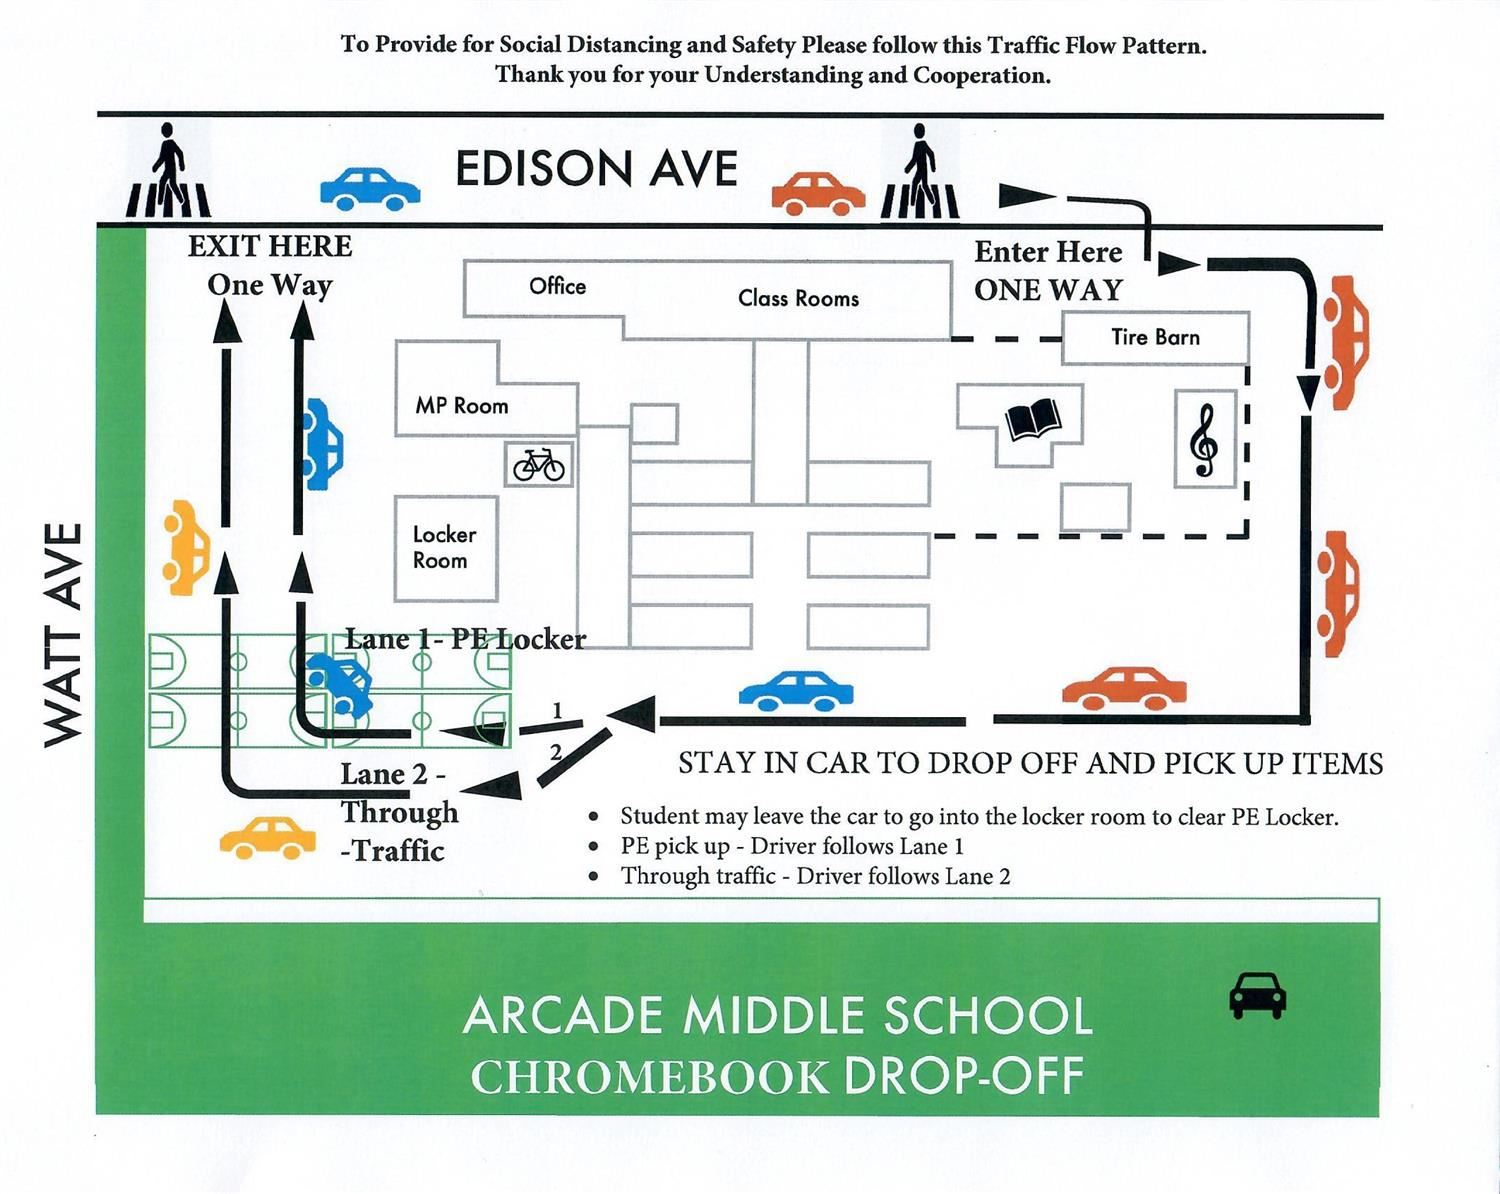 Arcade Drive Thru Days for items that need to be picked up or dropped off!